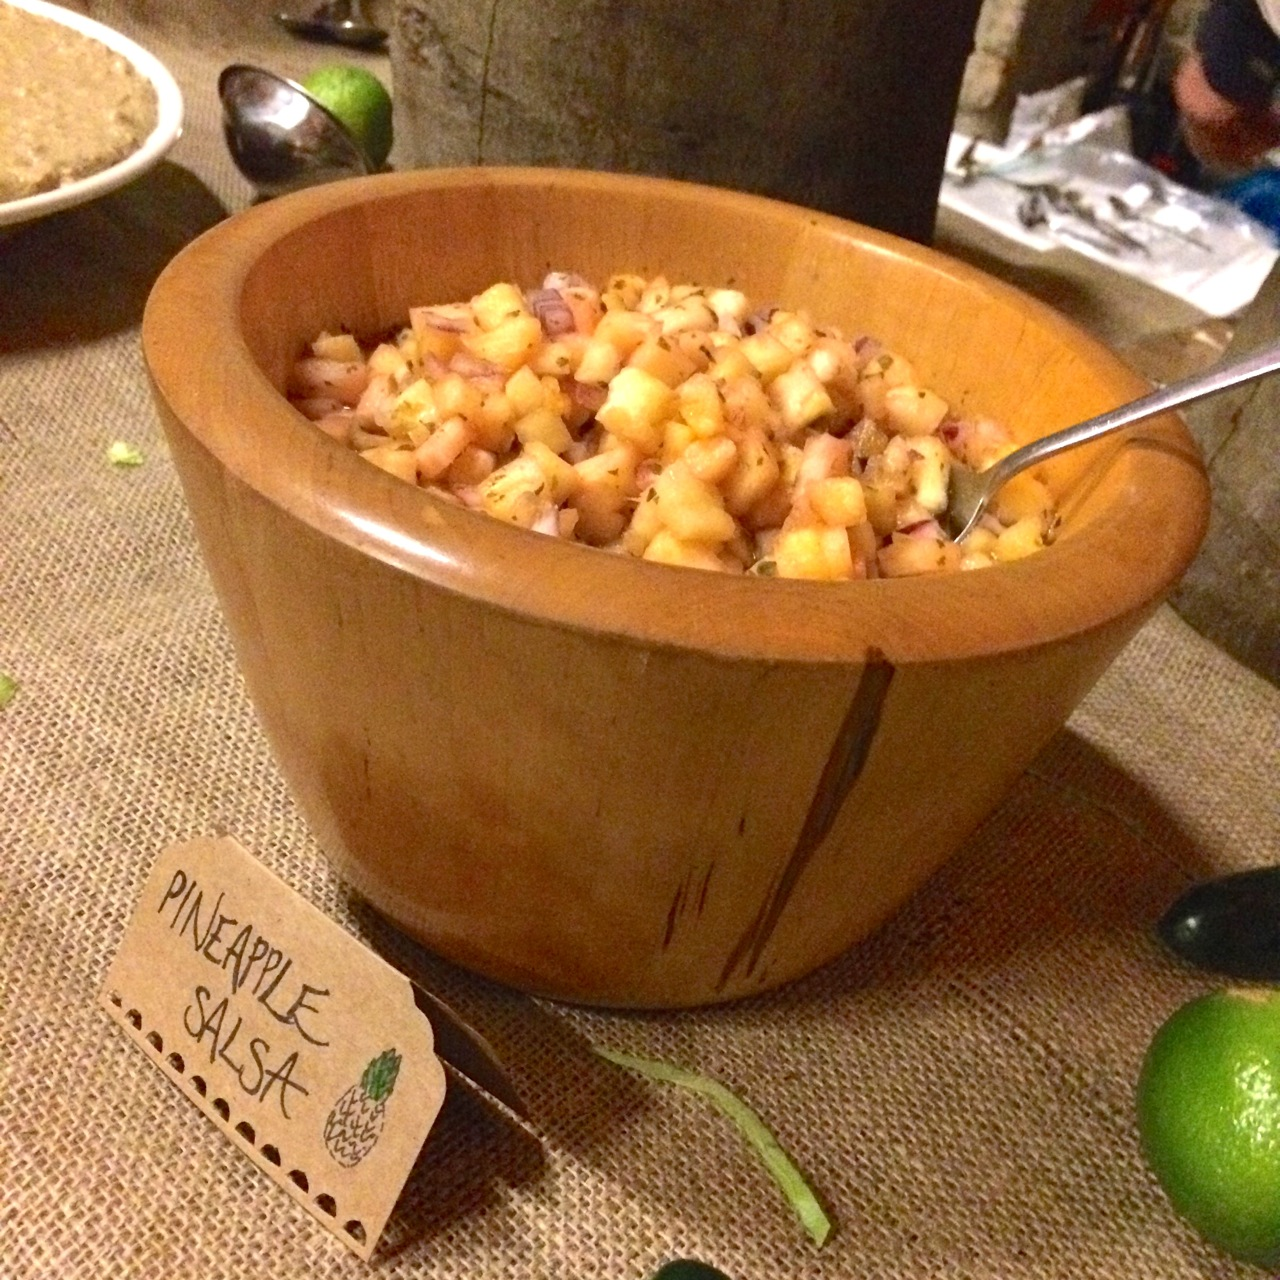 http://i2.wp.com/fatgayvegan.com/wp-content/uploads/2016/01/pineapple-salsa.jpg?fit=1280%2C1280